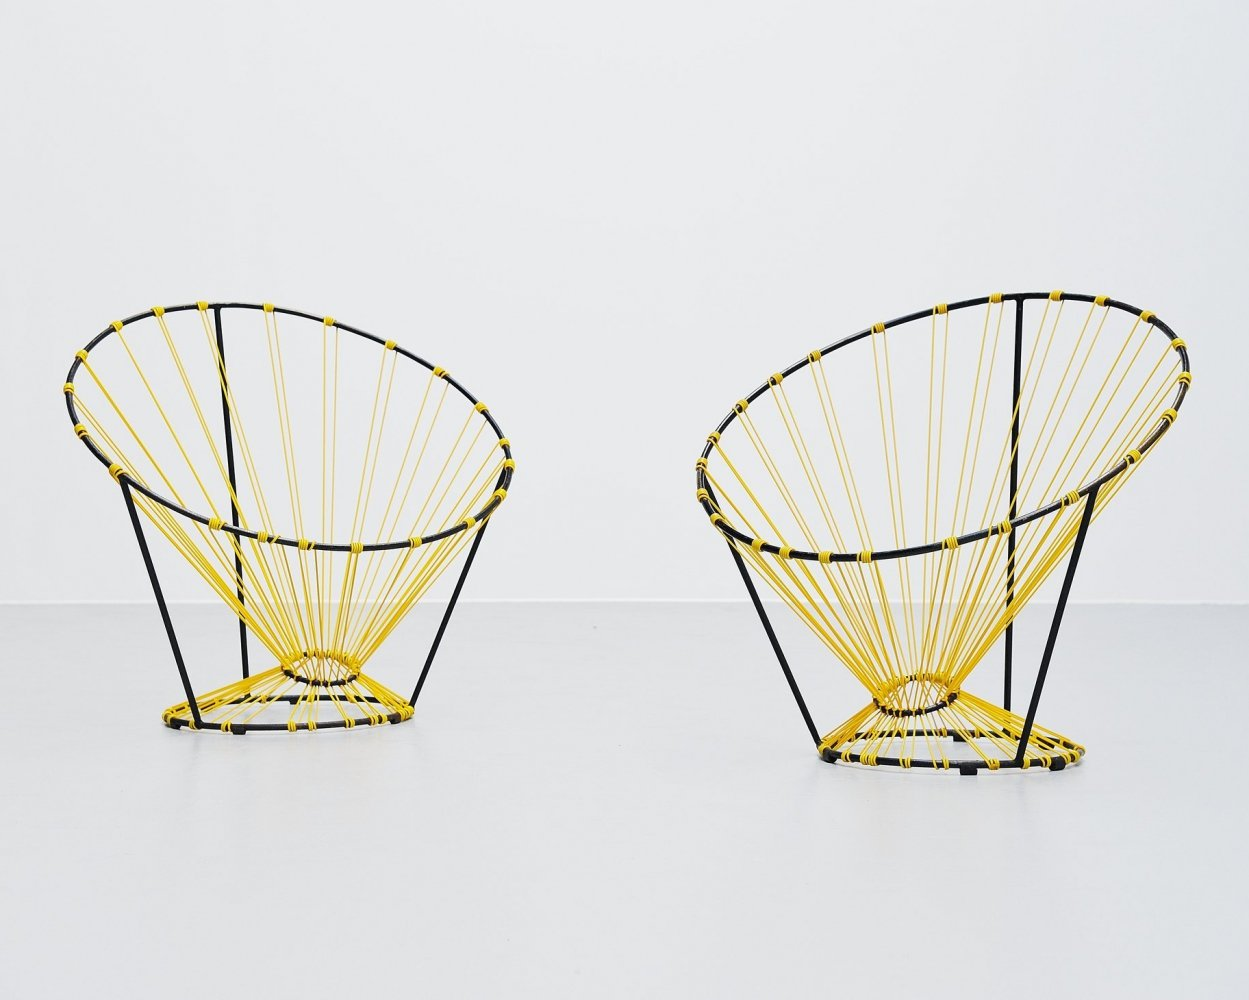 Pair of Coquetier chairs by A.R.P. Guariche Motte Mortier, France 1955